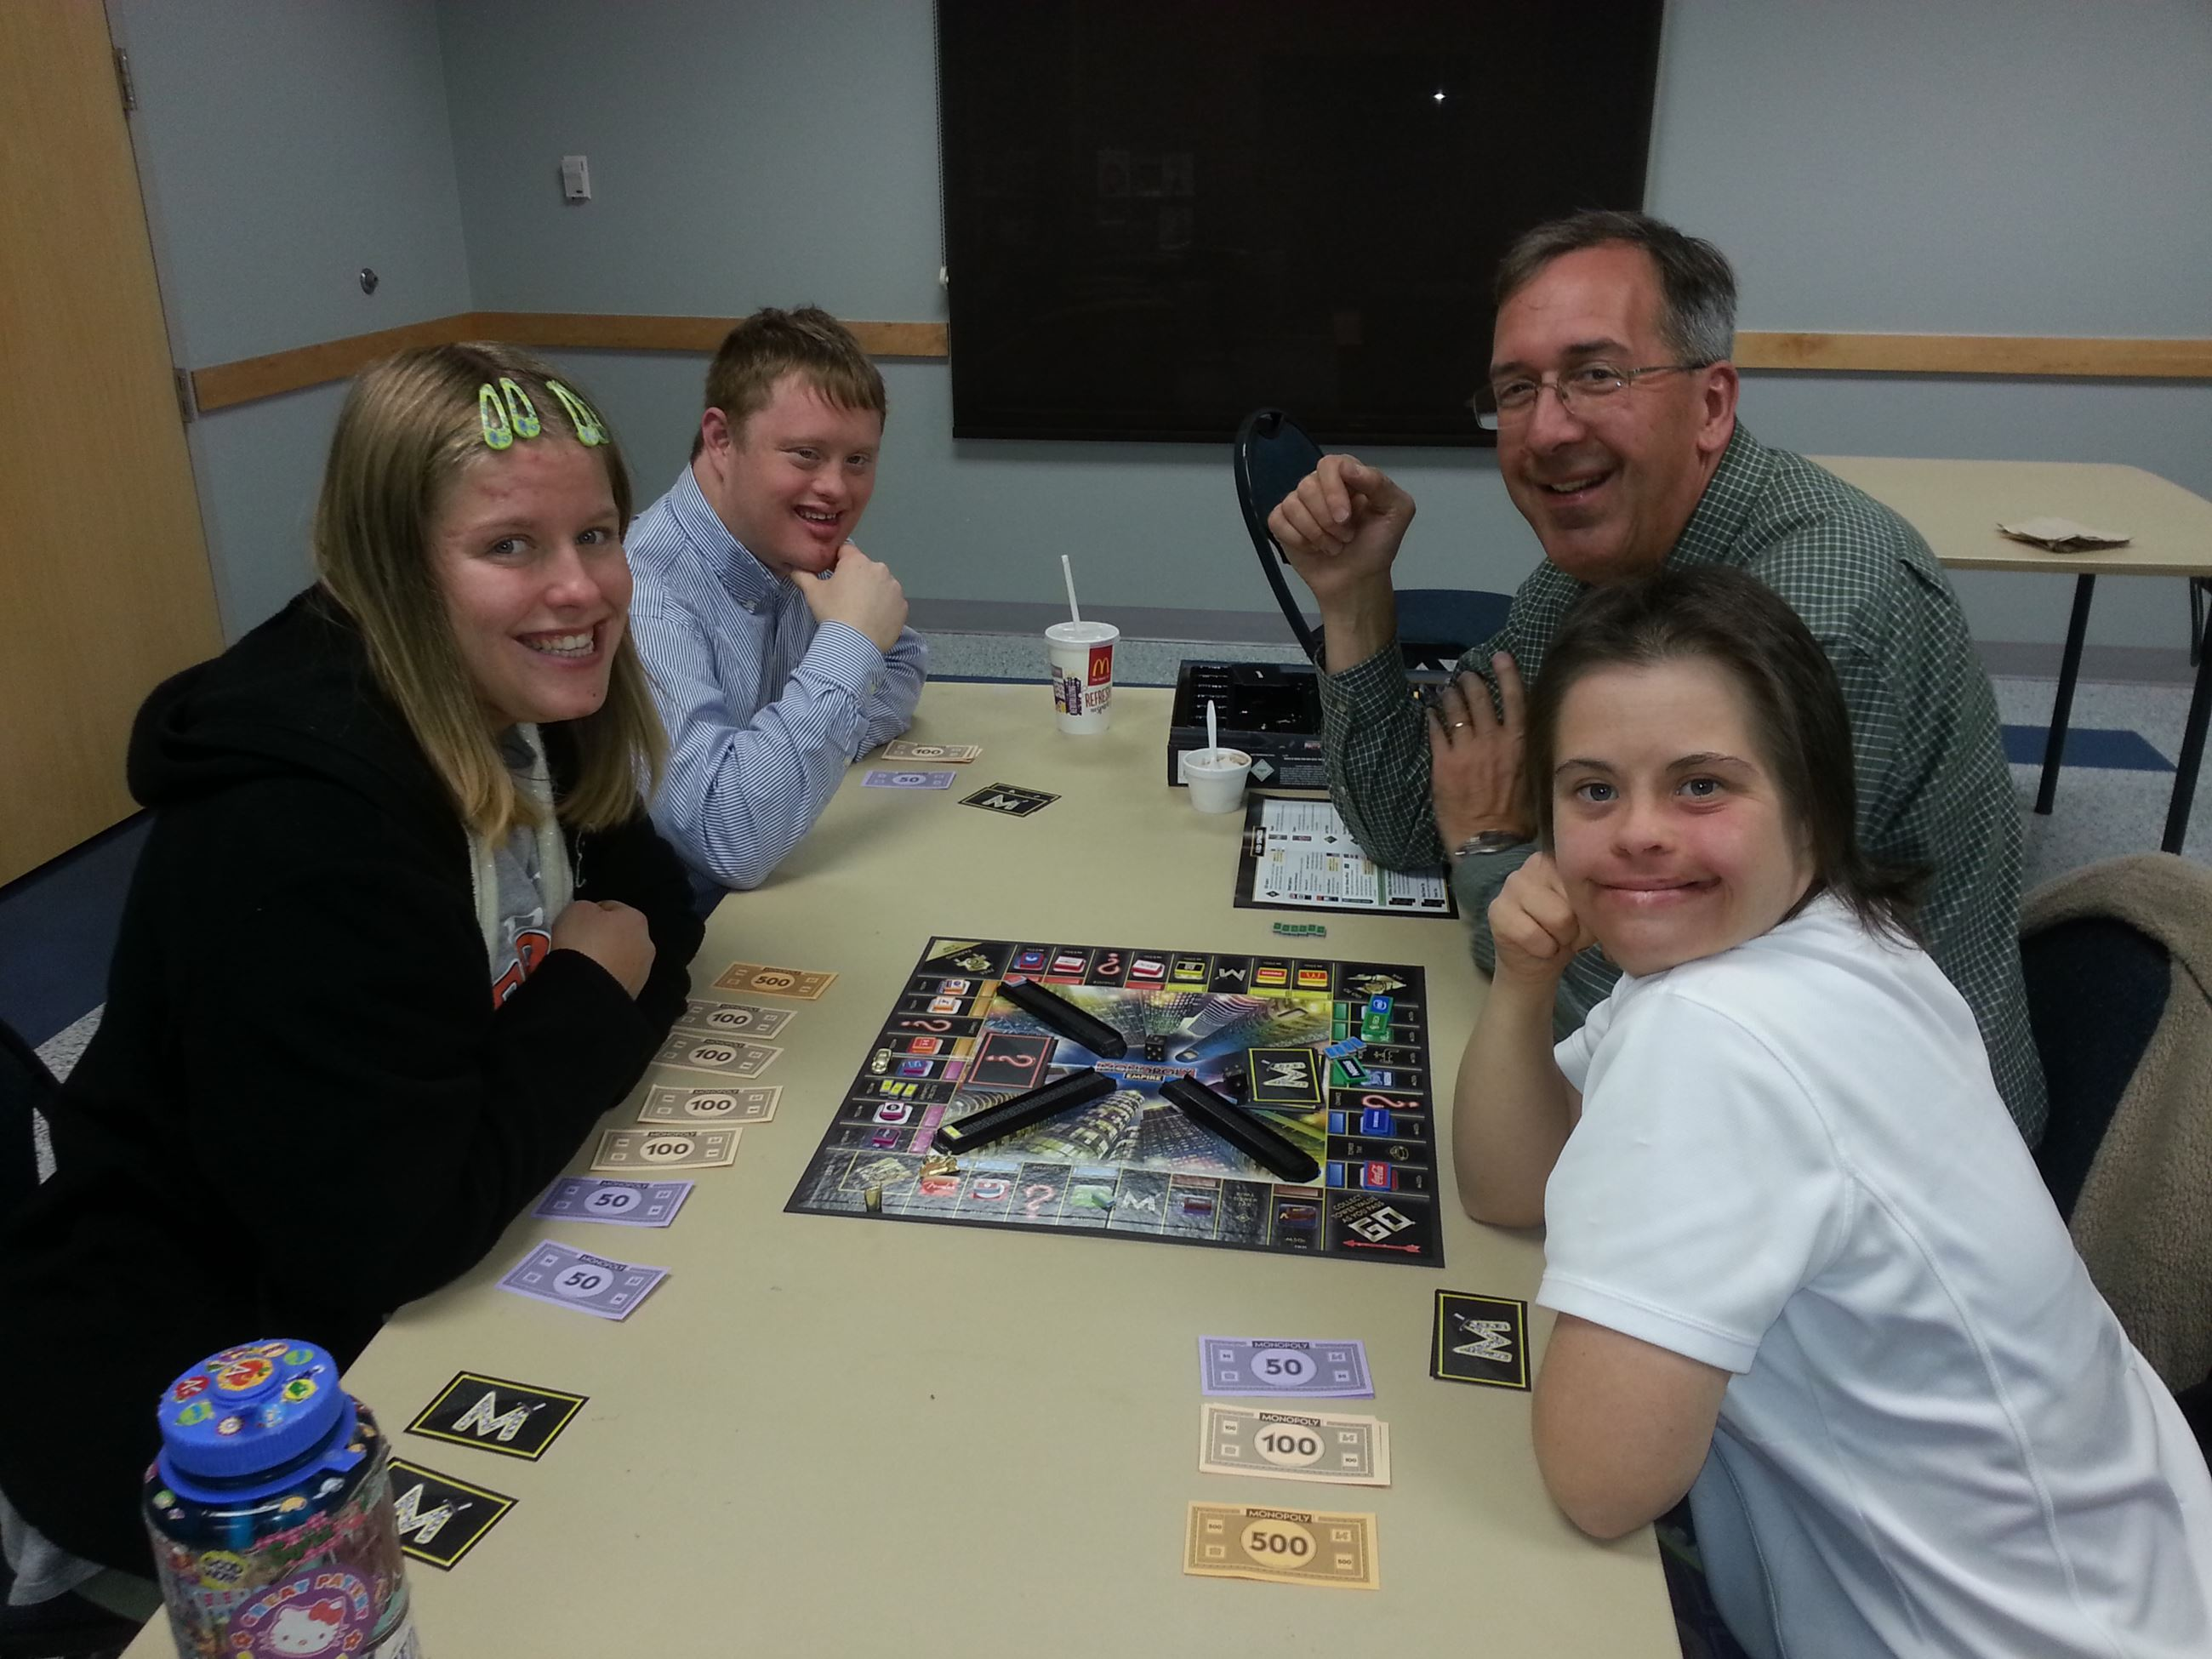 An adult and children playing a board game